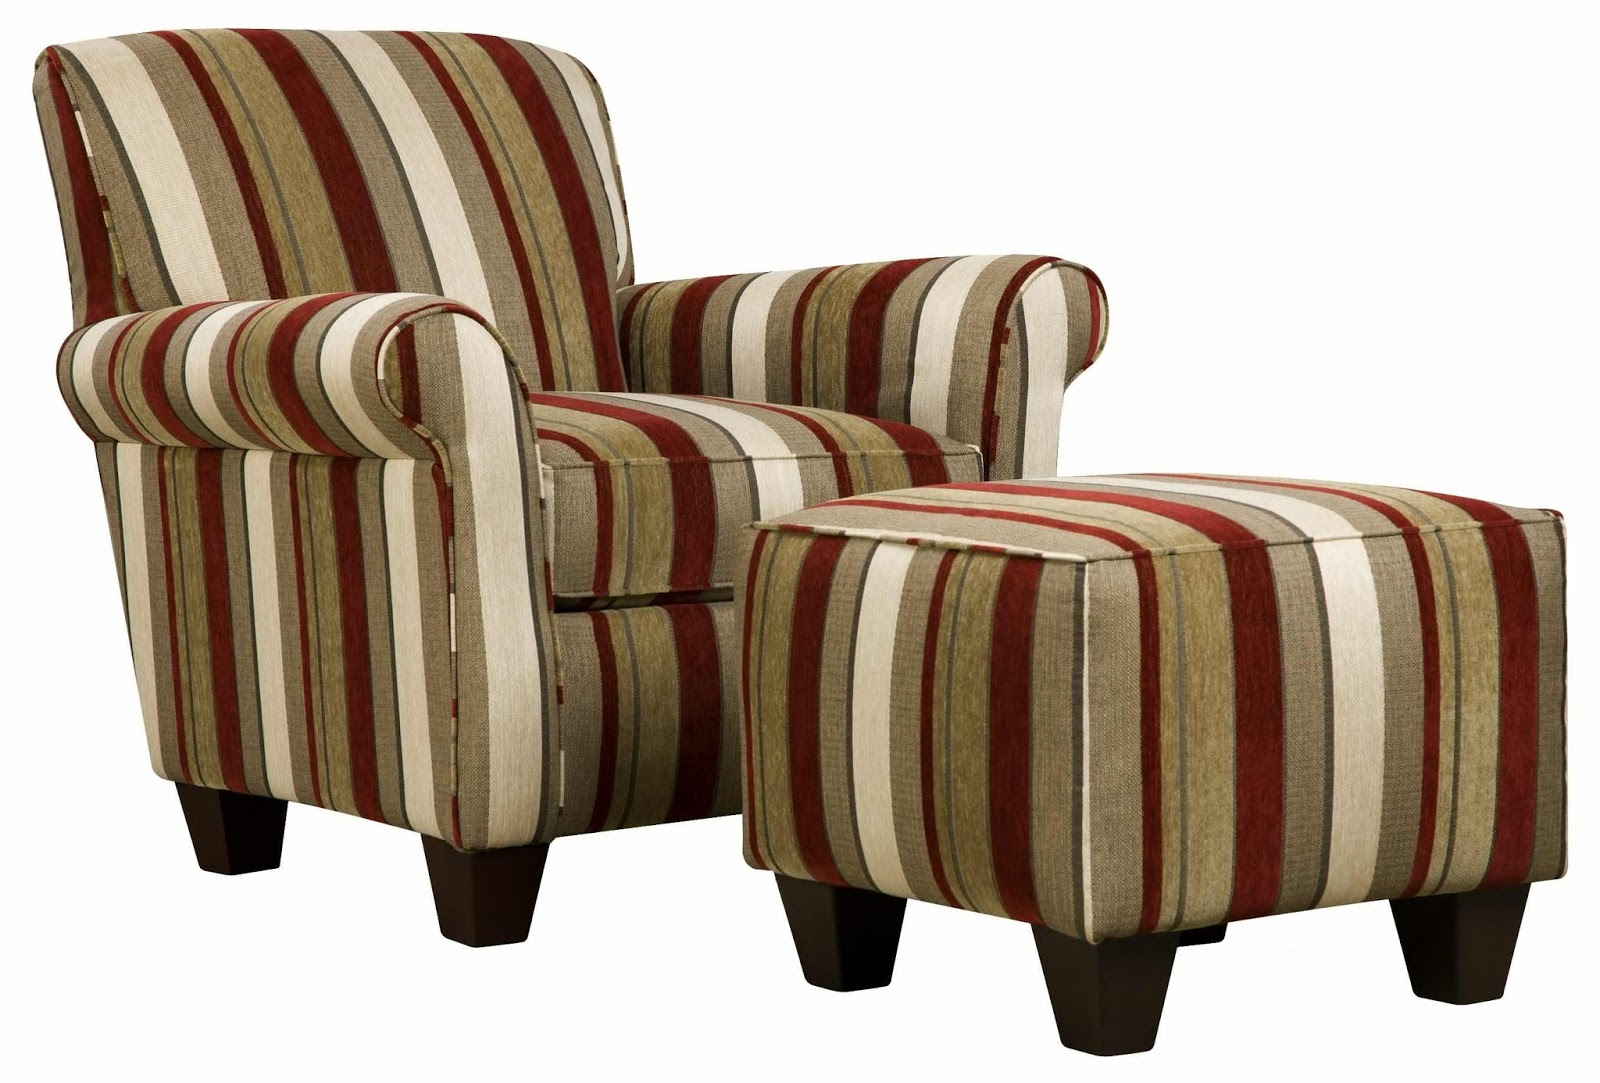 Chairs With Ottomans For Living Room Tommy Bahama Lawn Large Style Home Cheap